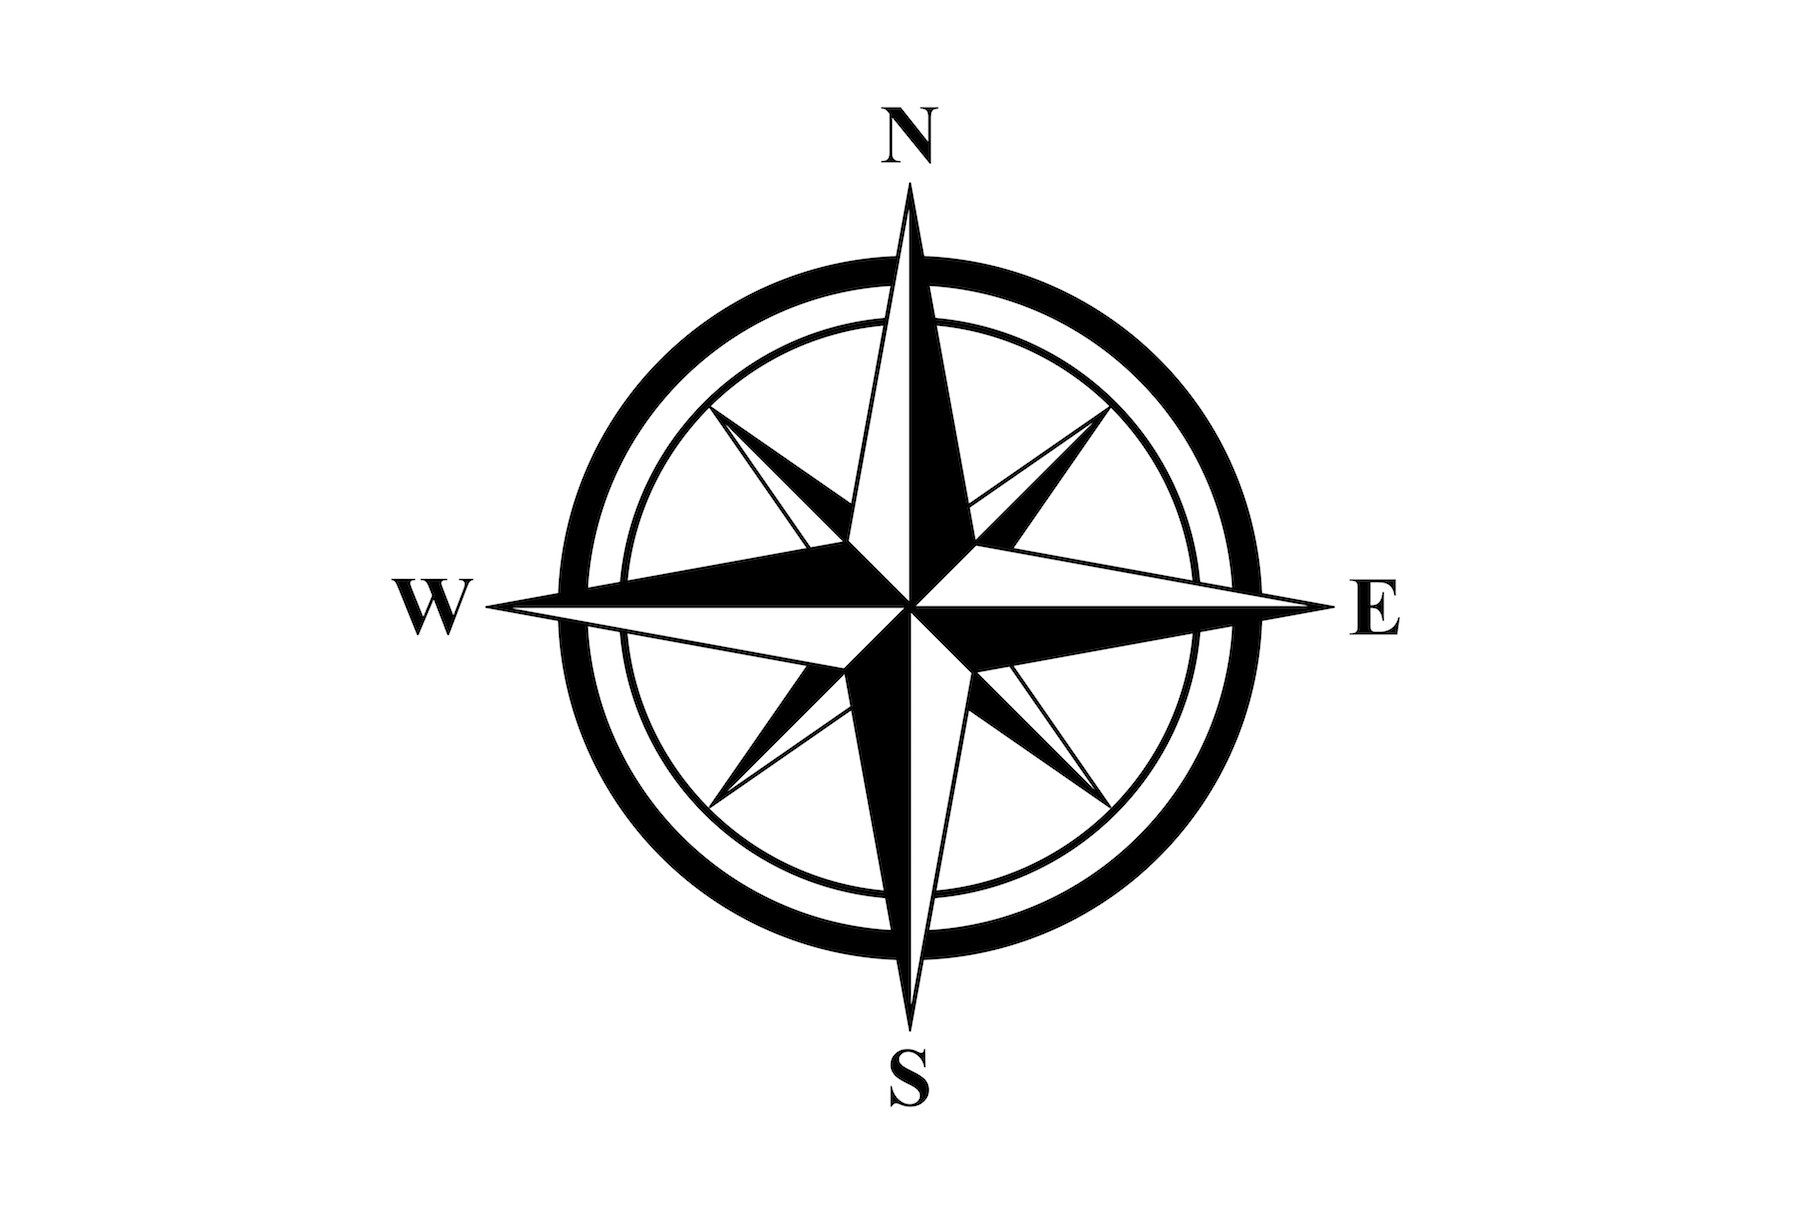 Basic Compass Rose With Images